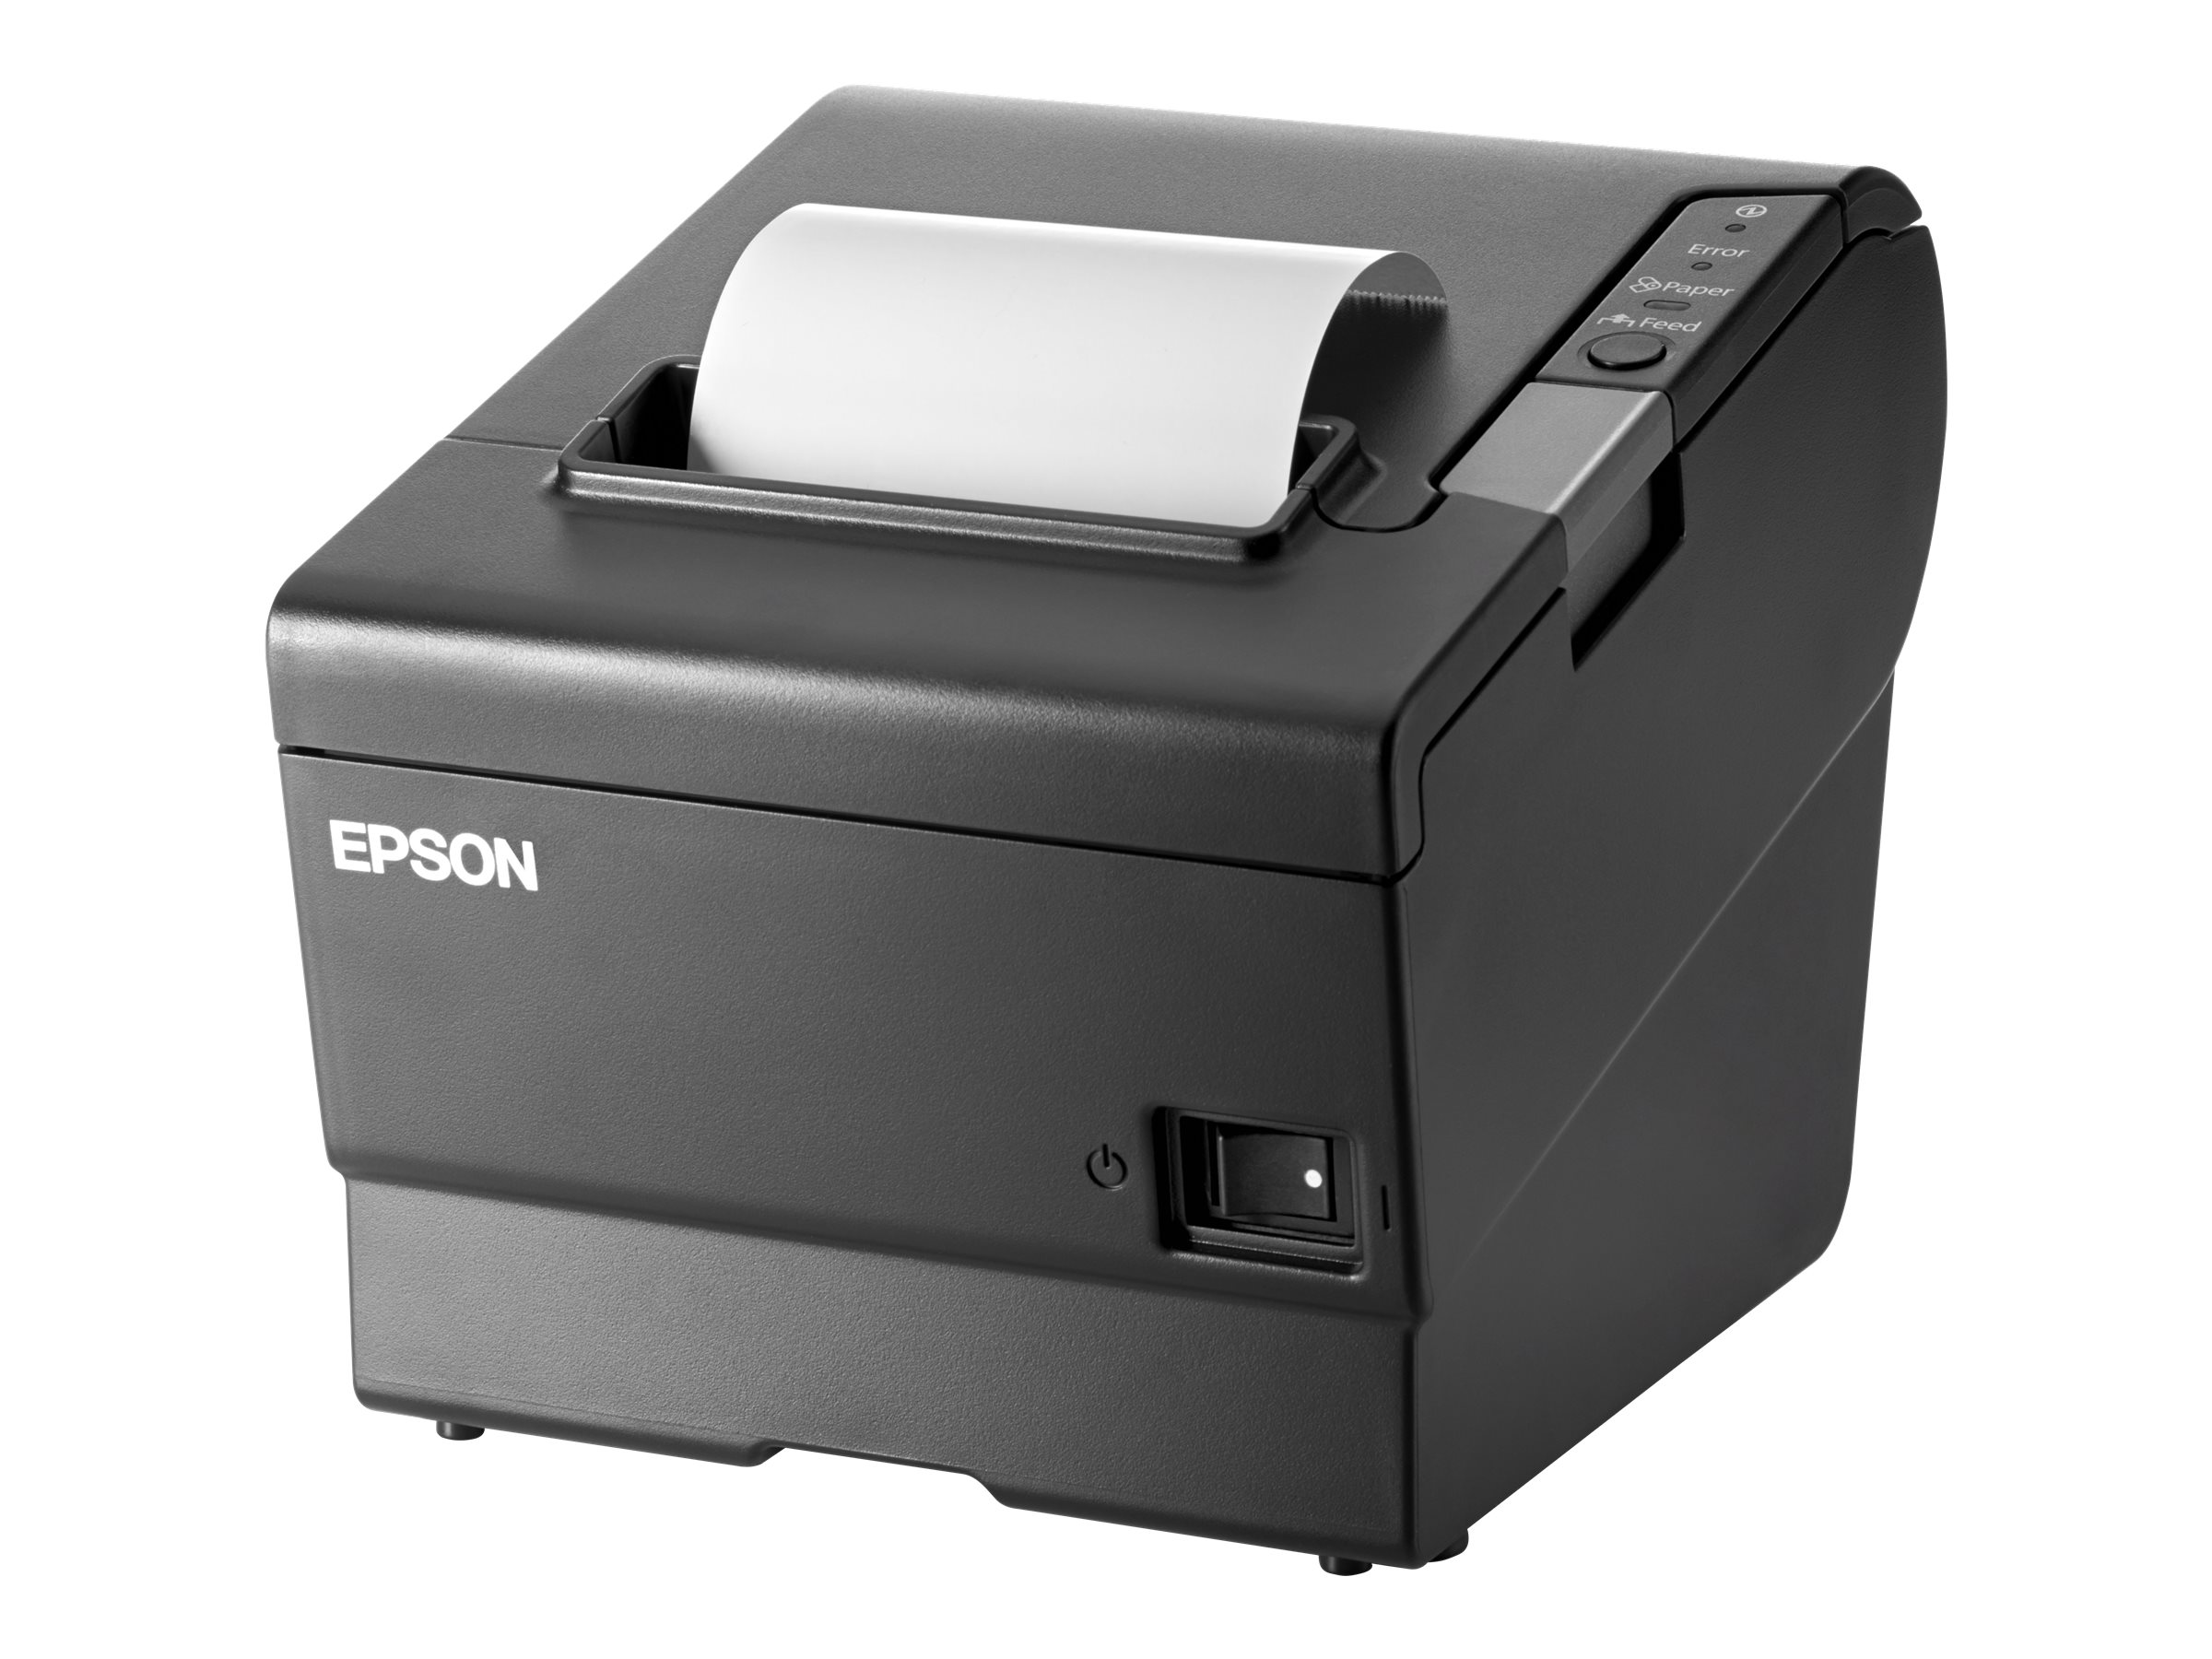 HP Epson TM-T88V Serial USB POS Printer